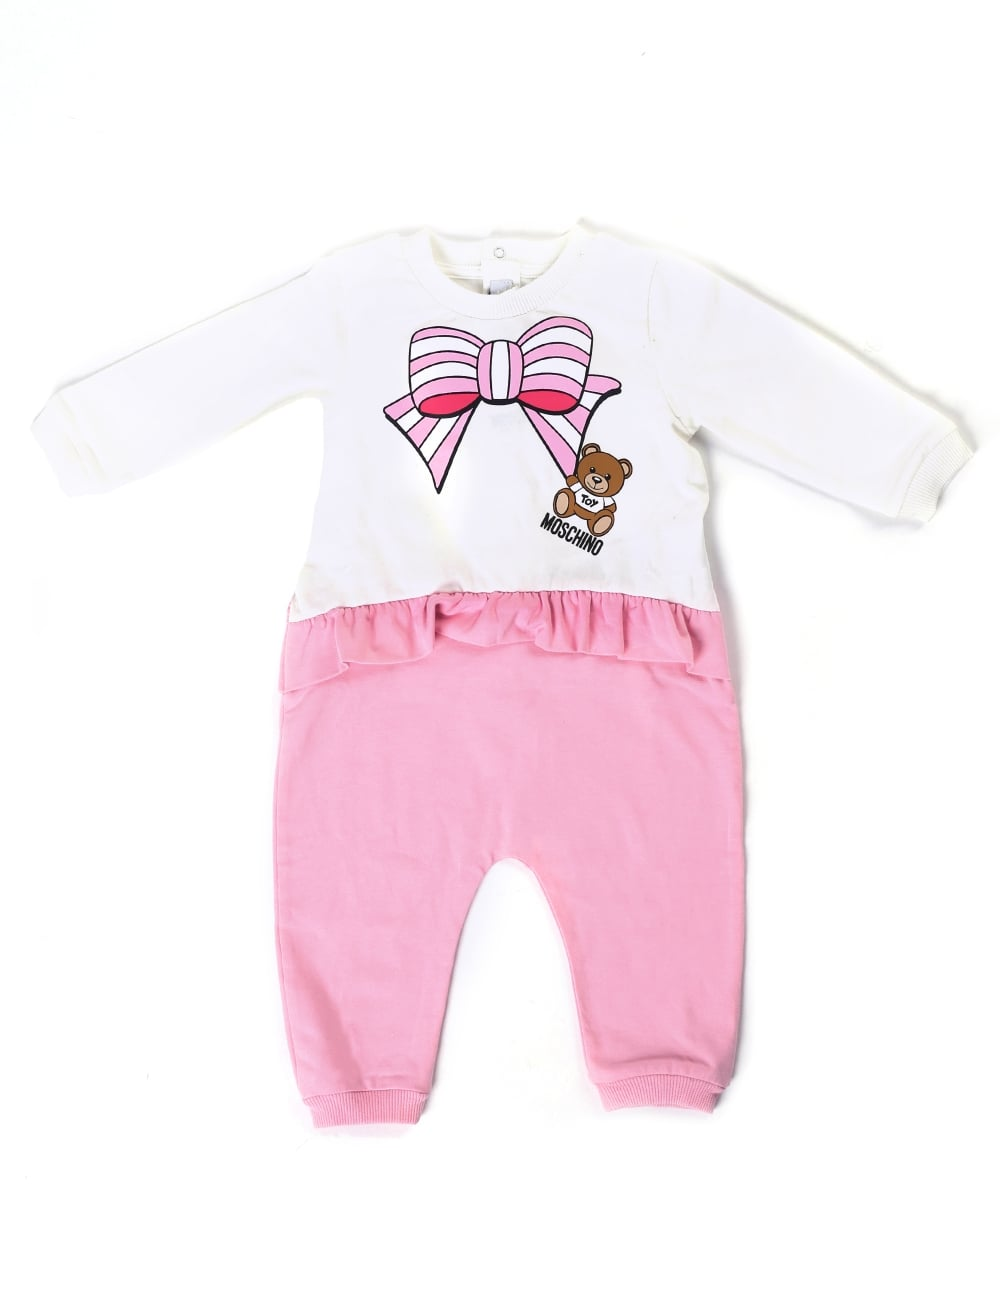 76d99ea8d0c5f Moschino Baby Girl Frill Leggings Babygrow